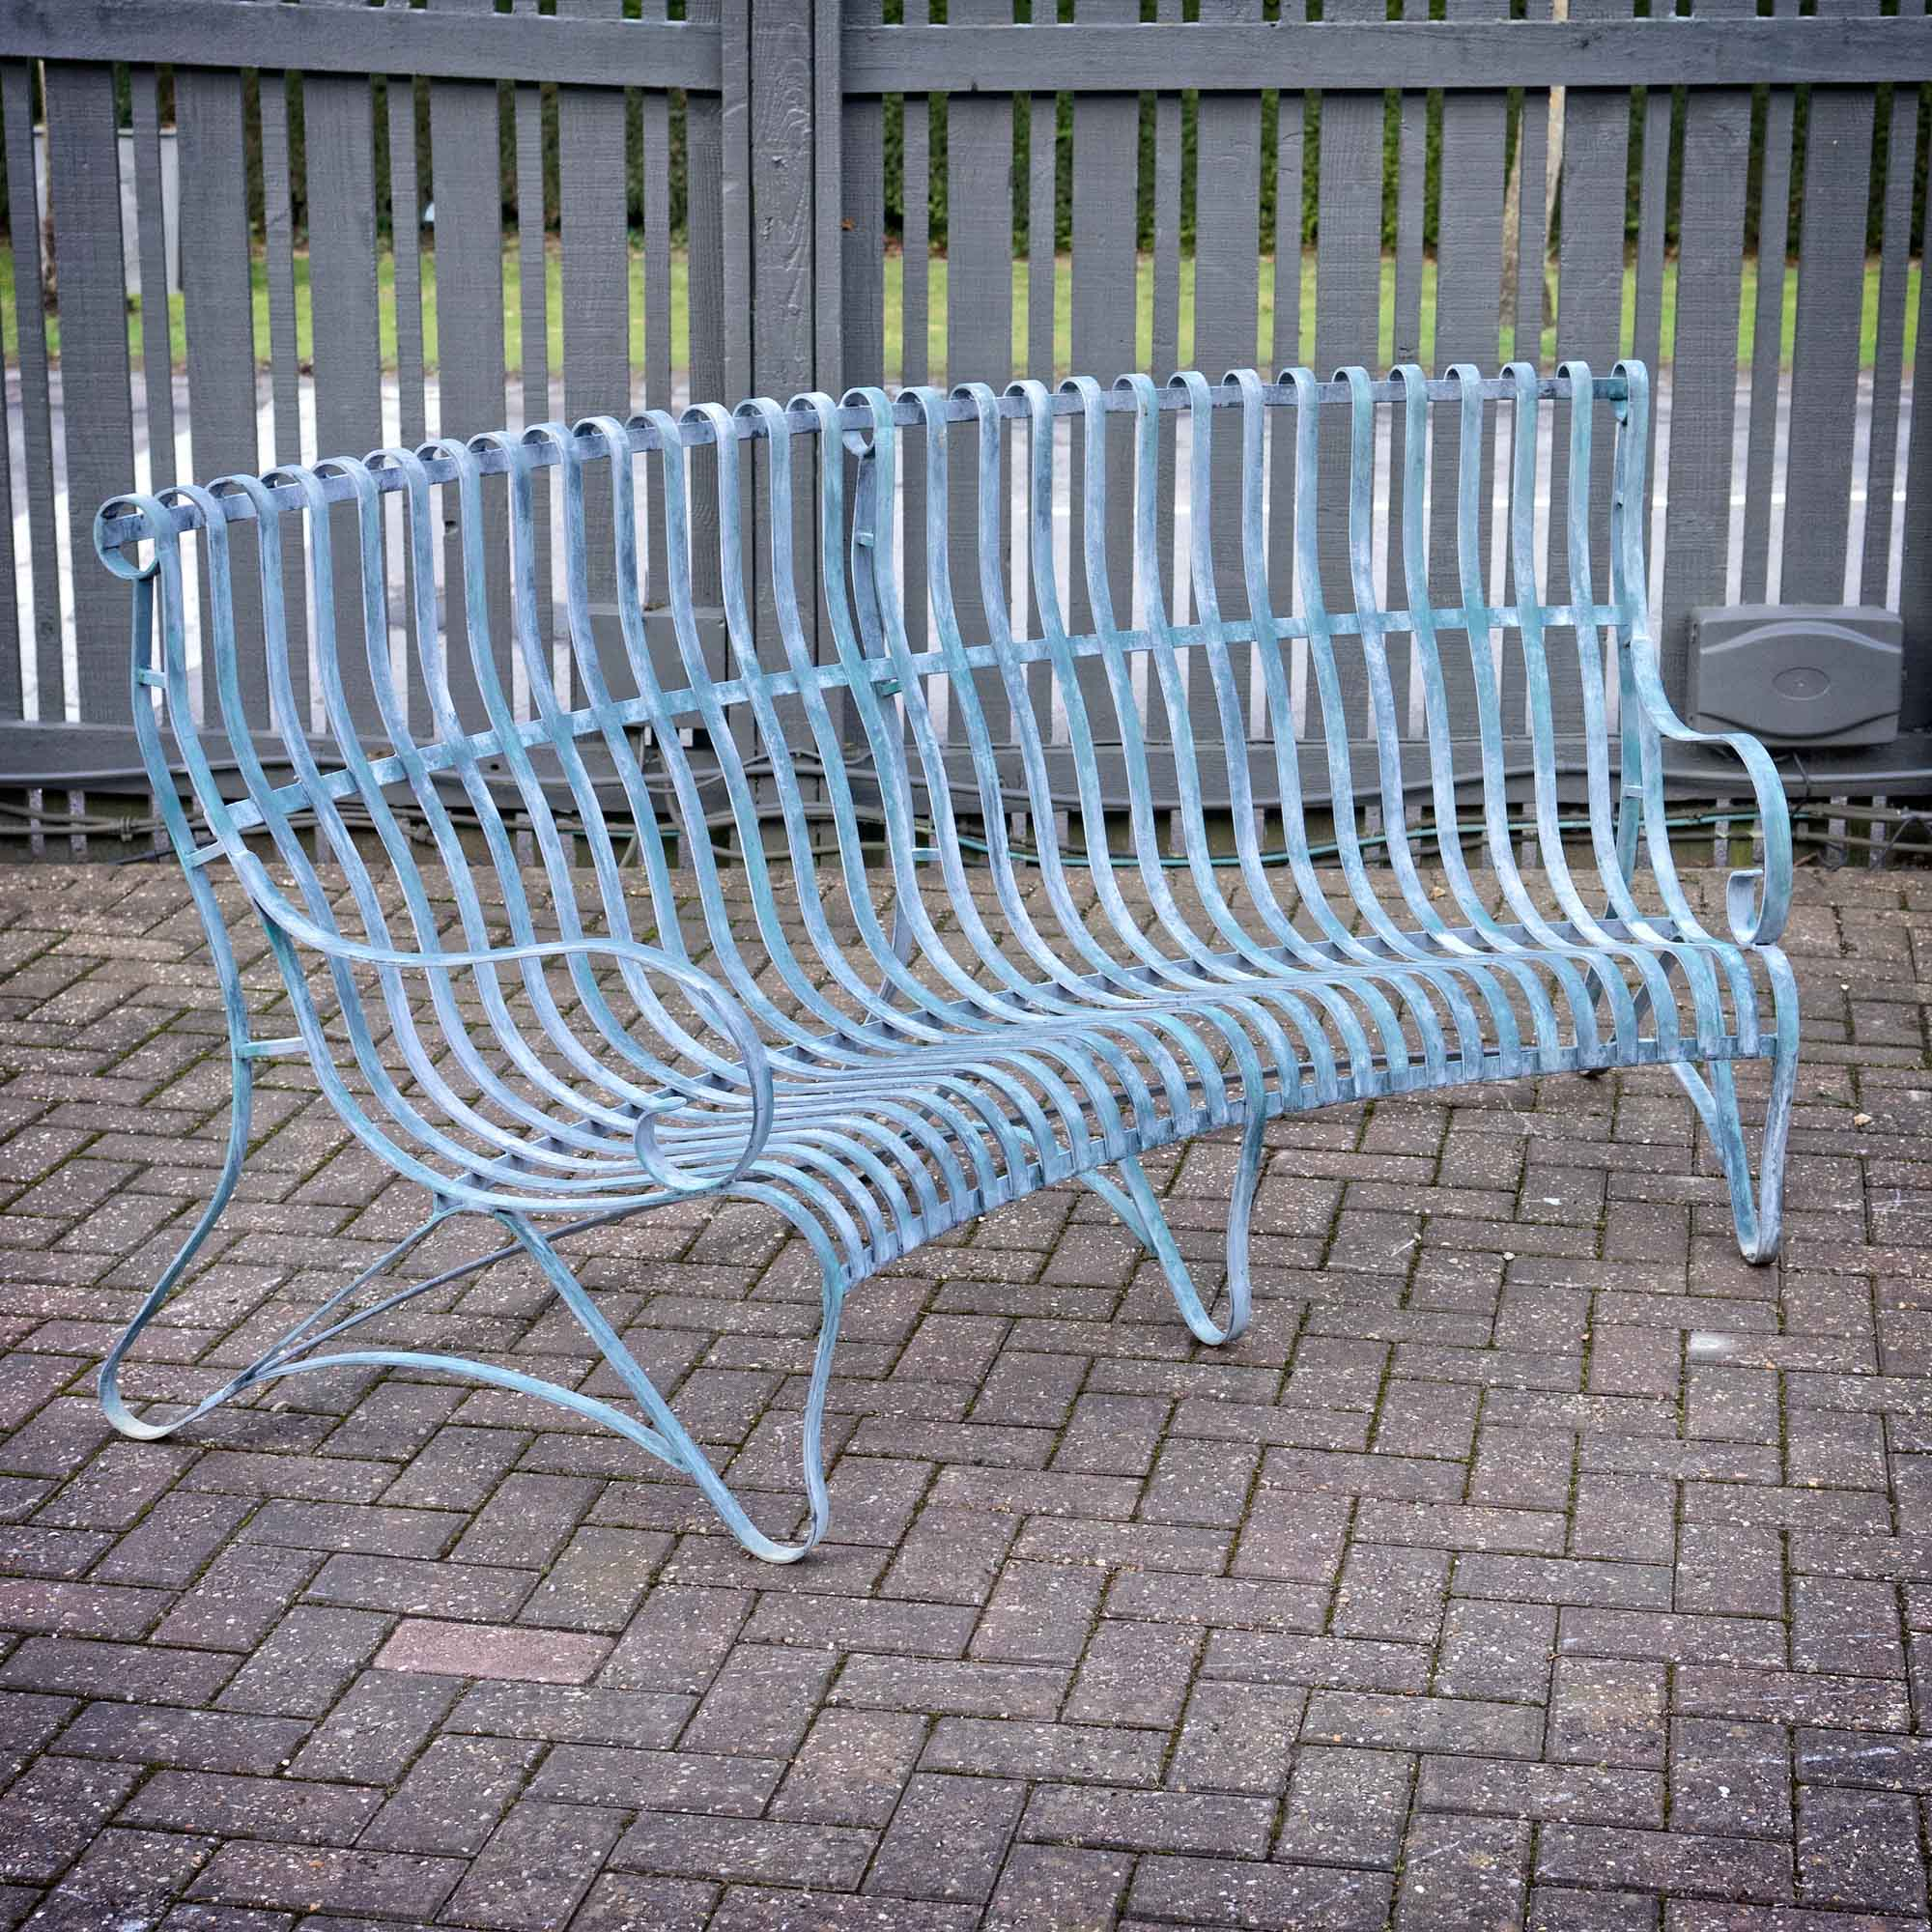 Verdigris Curved Garden Bench U2013 3 Seater ...